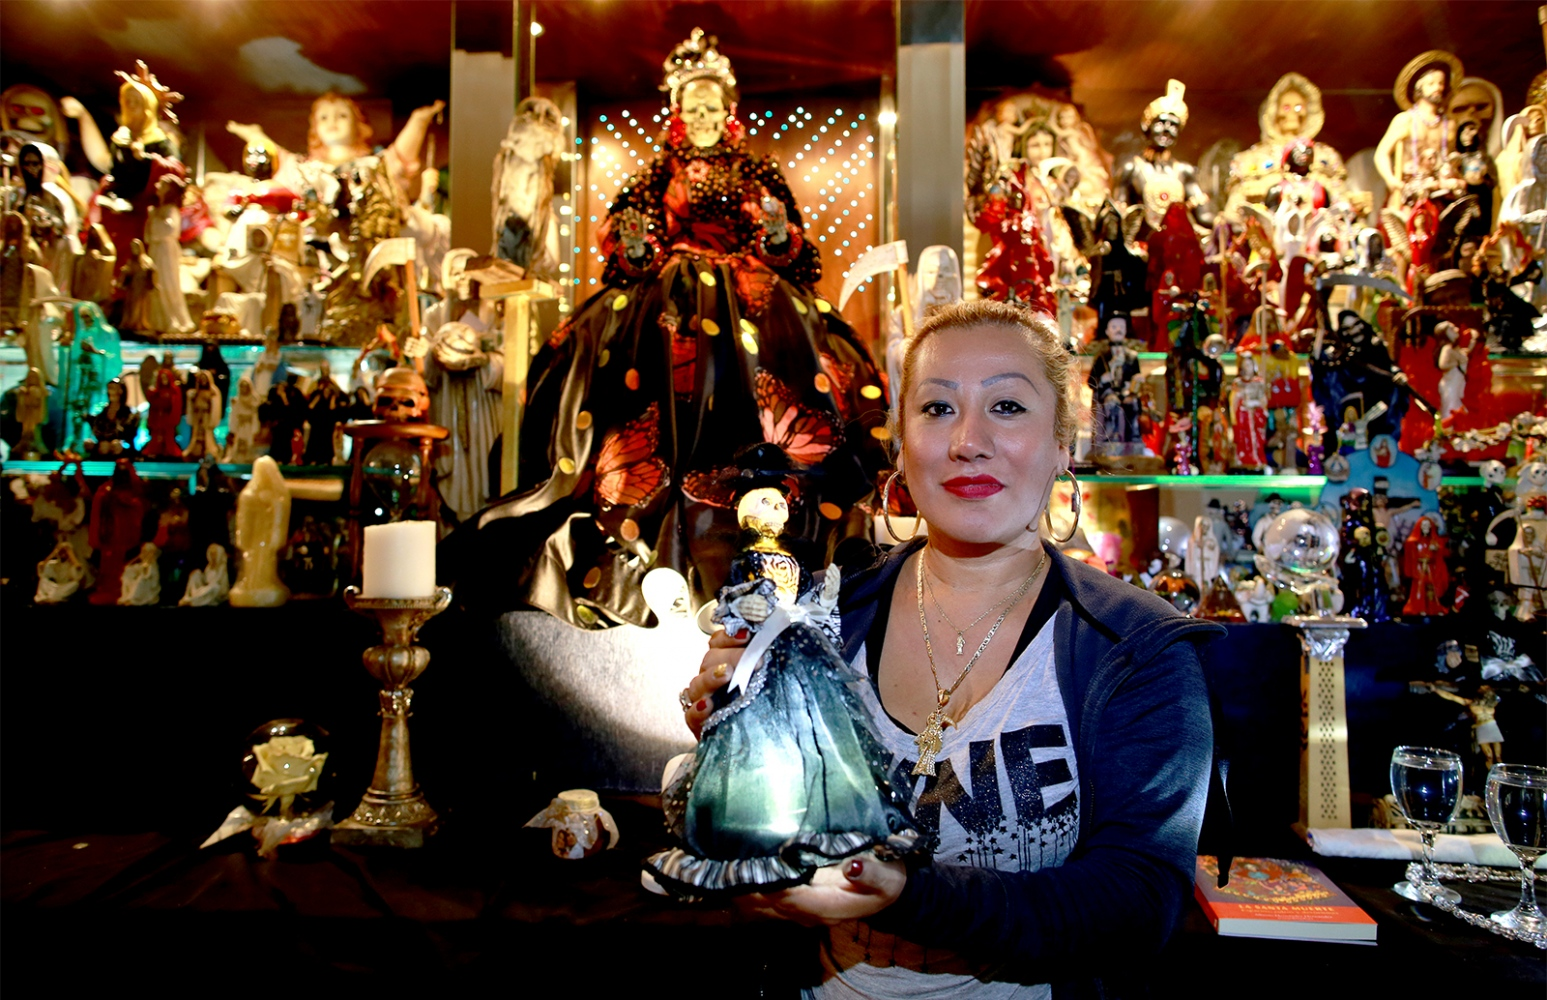 Arely Vazquez - Santa Muerte follower - Queens - NY